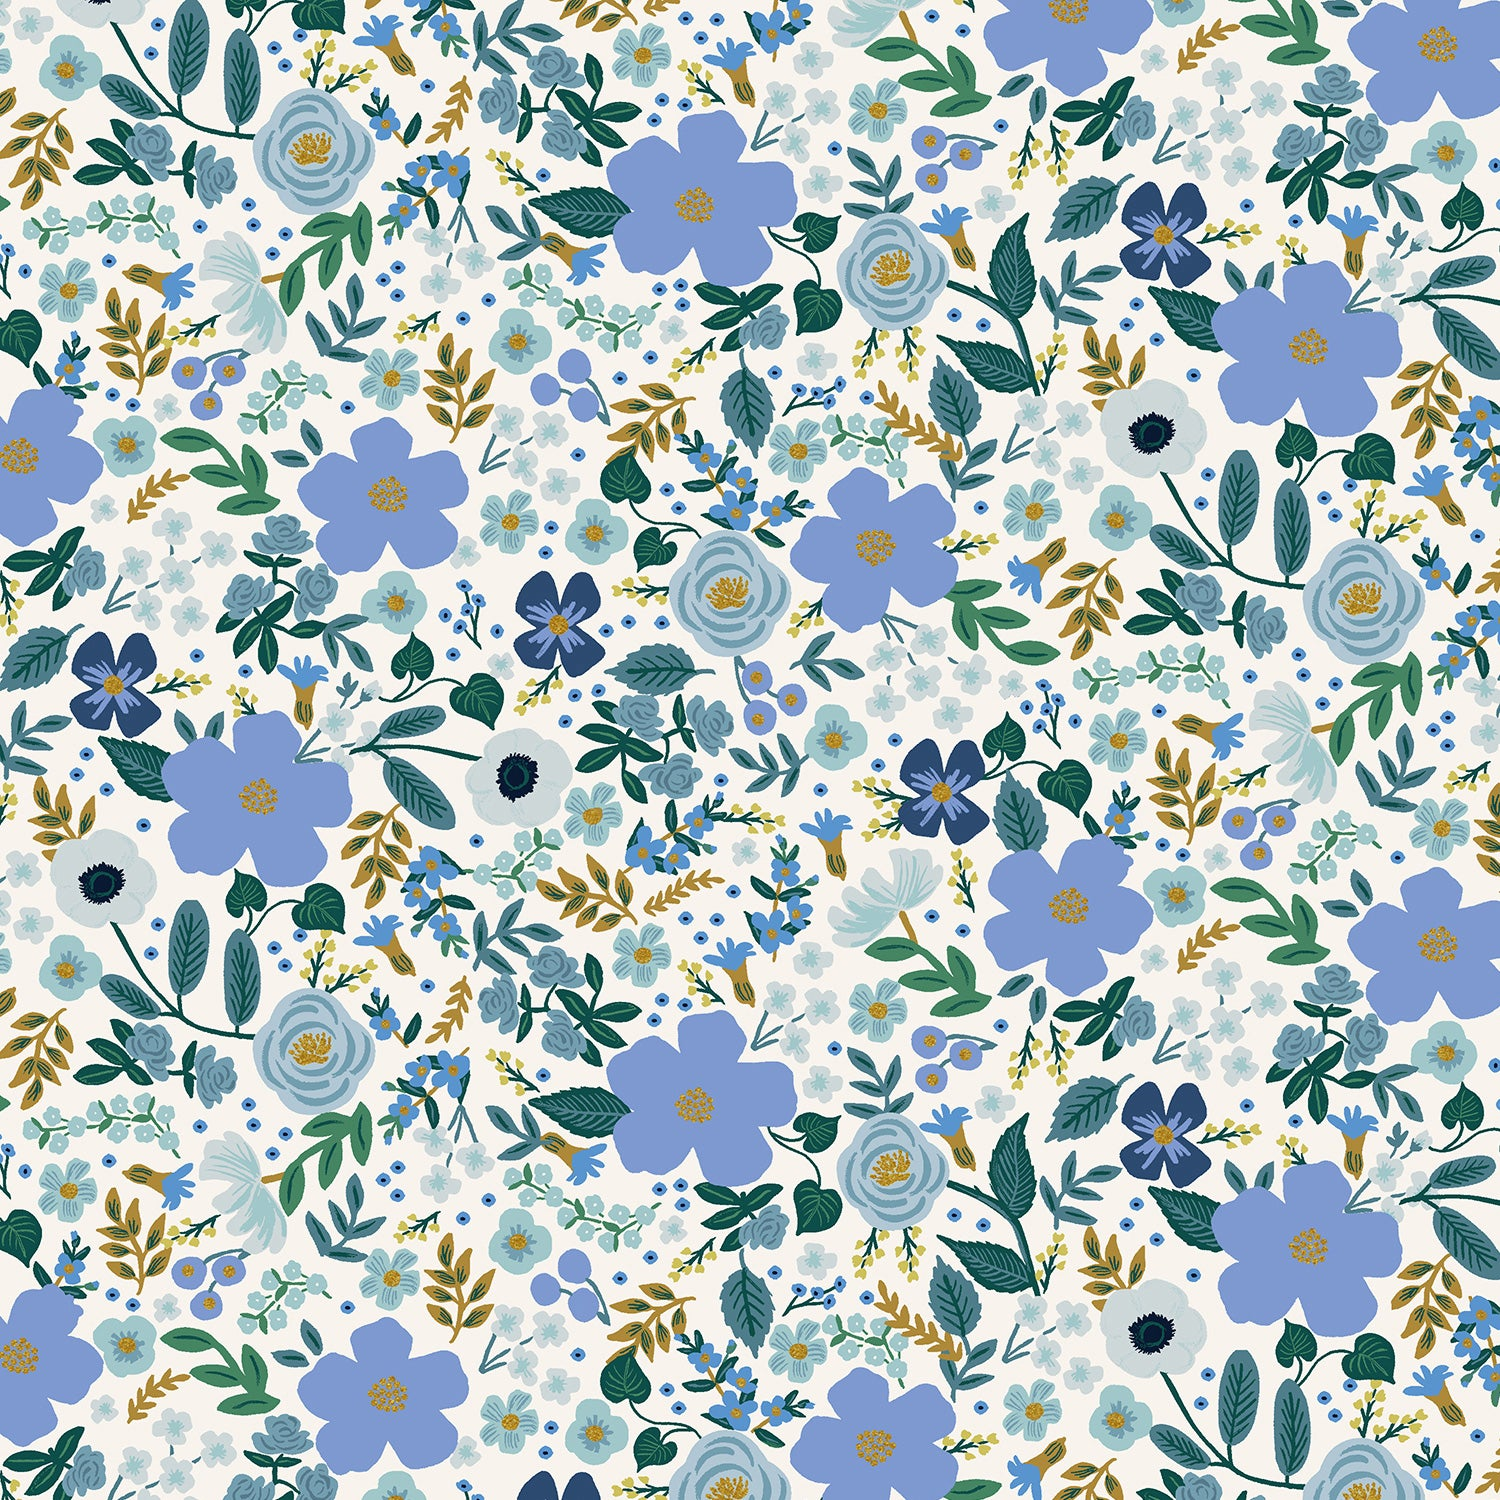 Manufacturer: Cotton and Steel Designer: Rifle Paper Co. Collection: Garden Party Print Name: Wild Rose in Blue Metallic Material: 100% Cotton  Weight: Quilting  SKU: RP303-BL6M Width: 44 inches